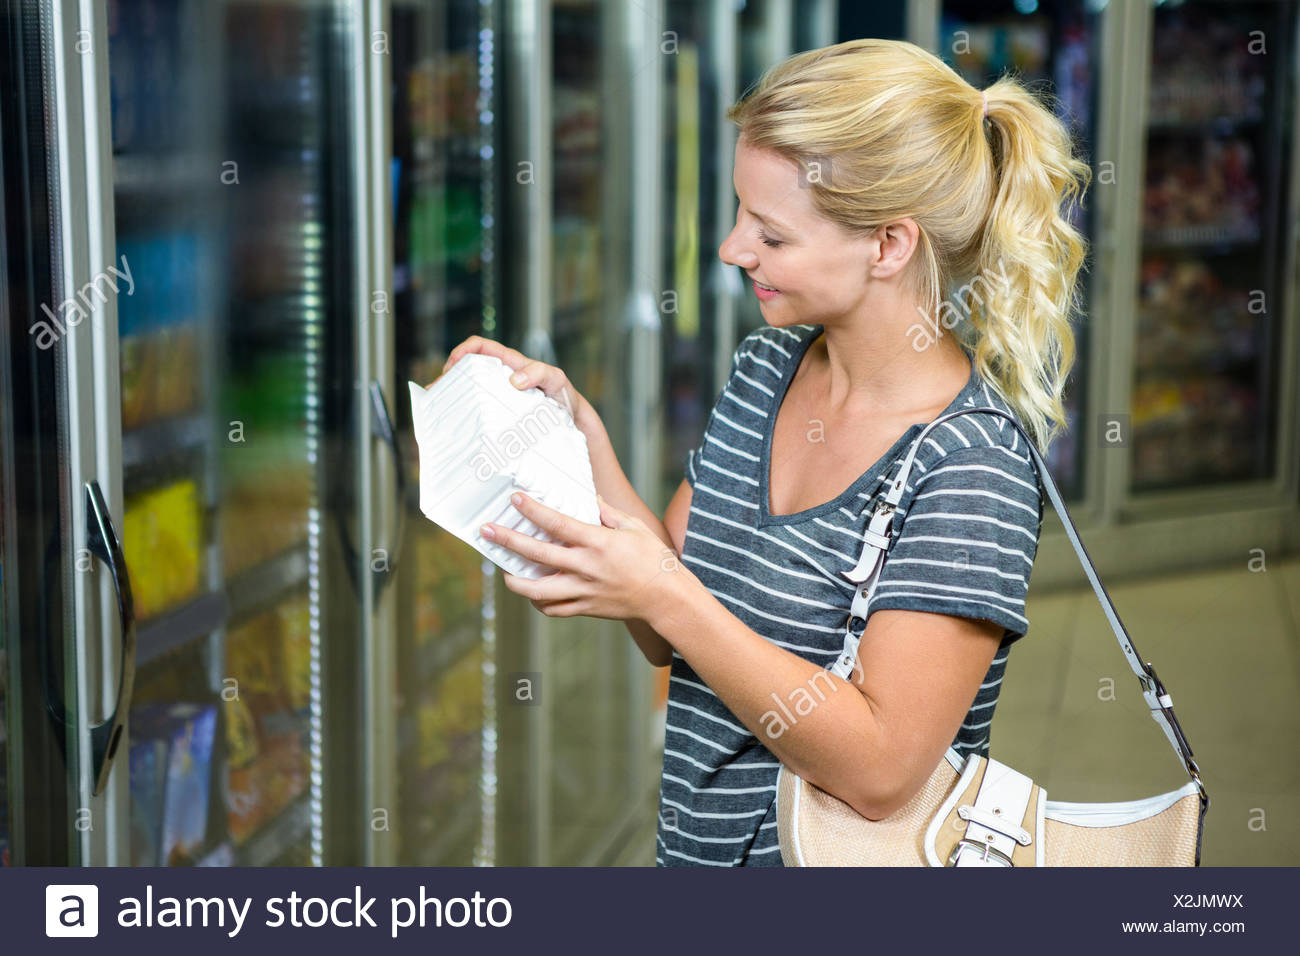 Blonde woman looking at product Stock Photo